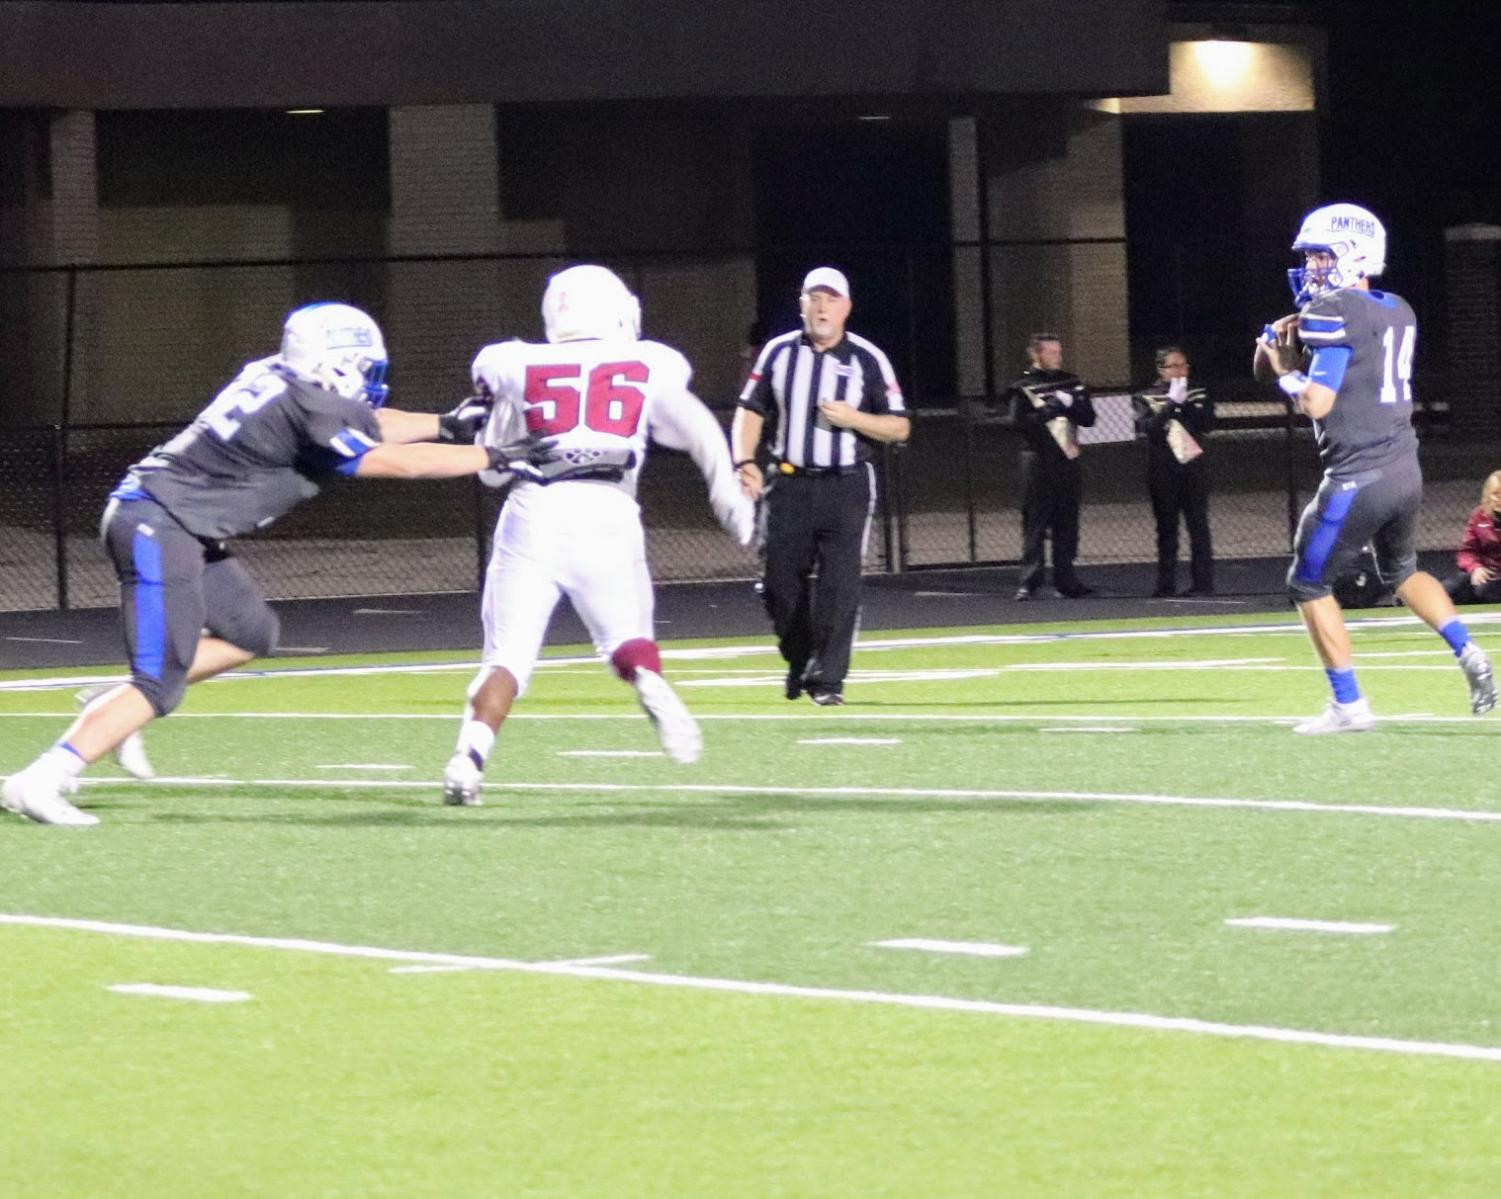 Gage Whites looks downfield for an open receiver during Friday, October 18 match against LE